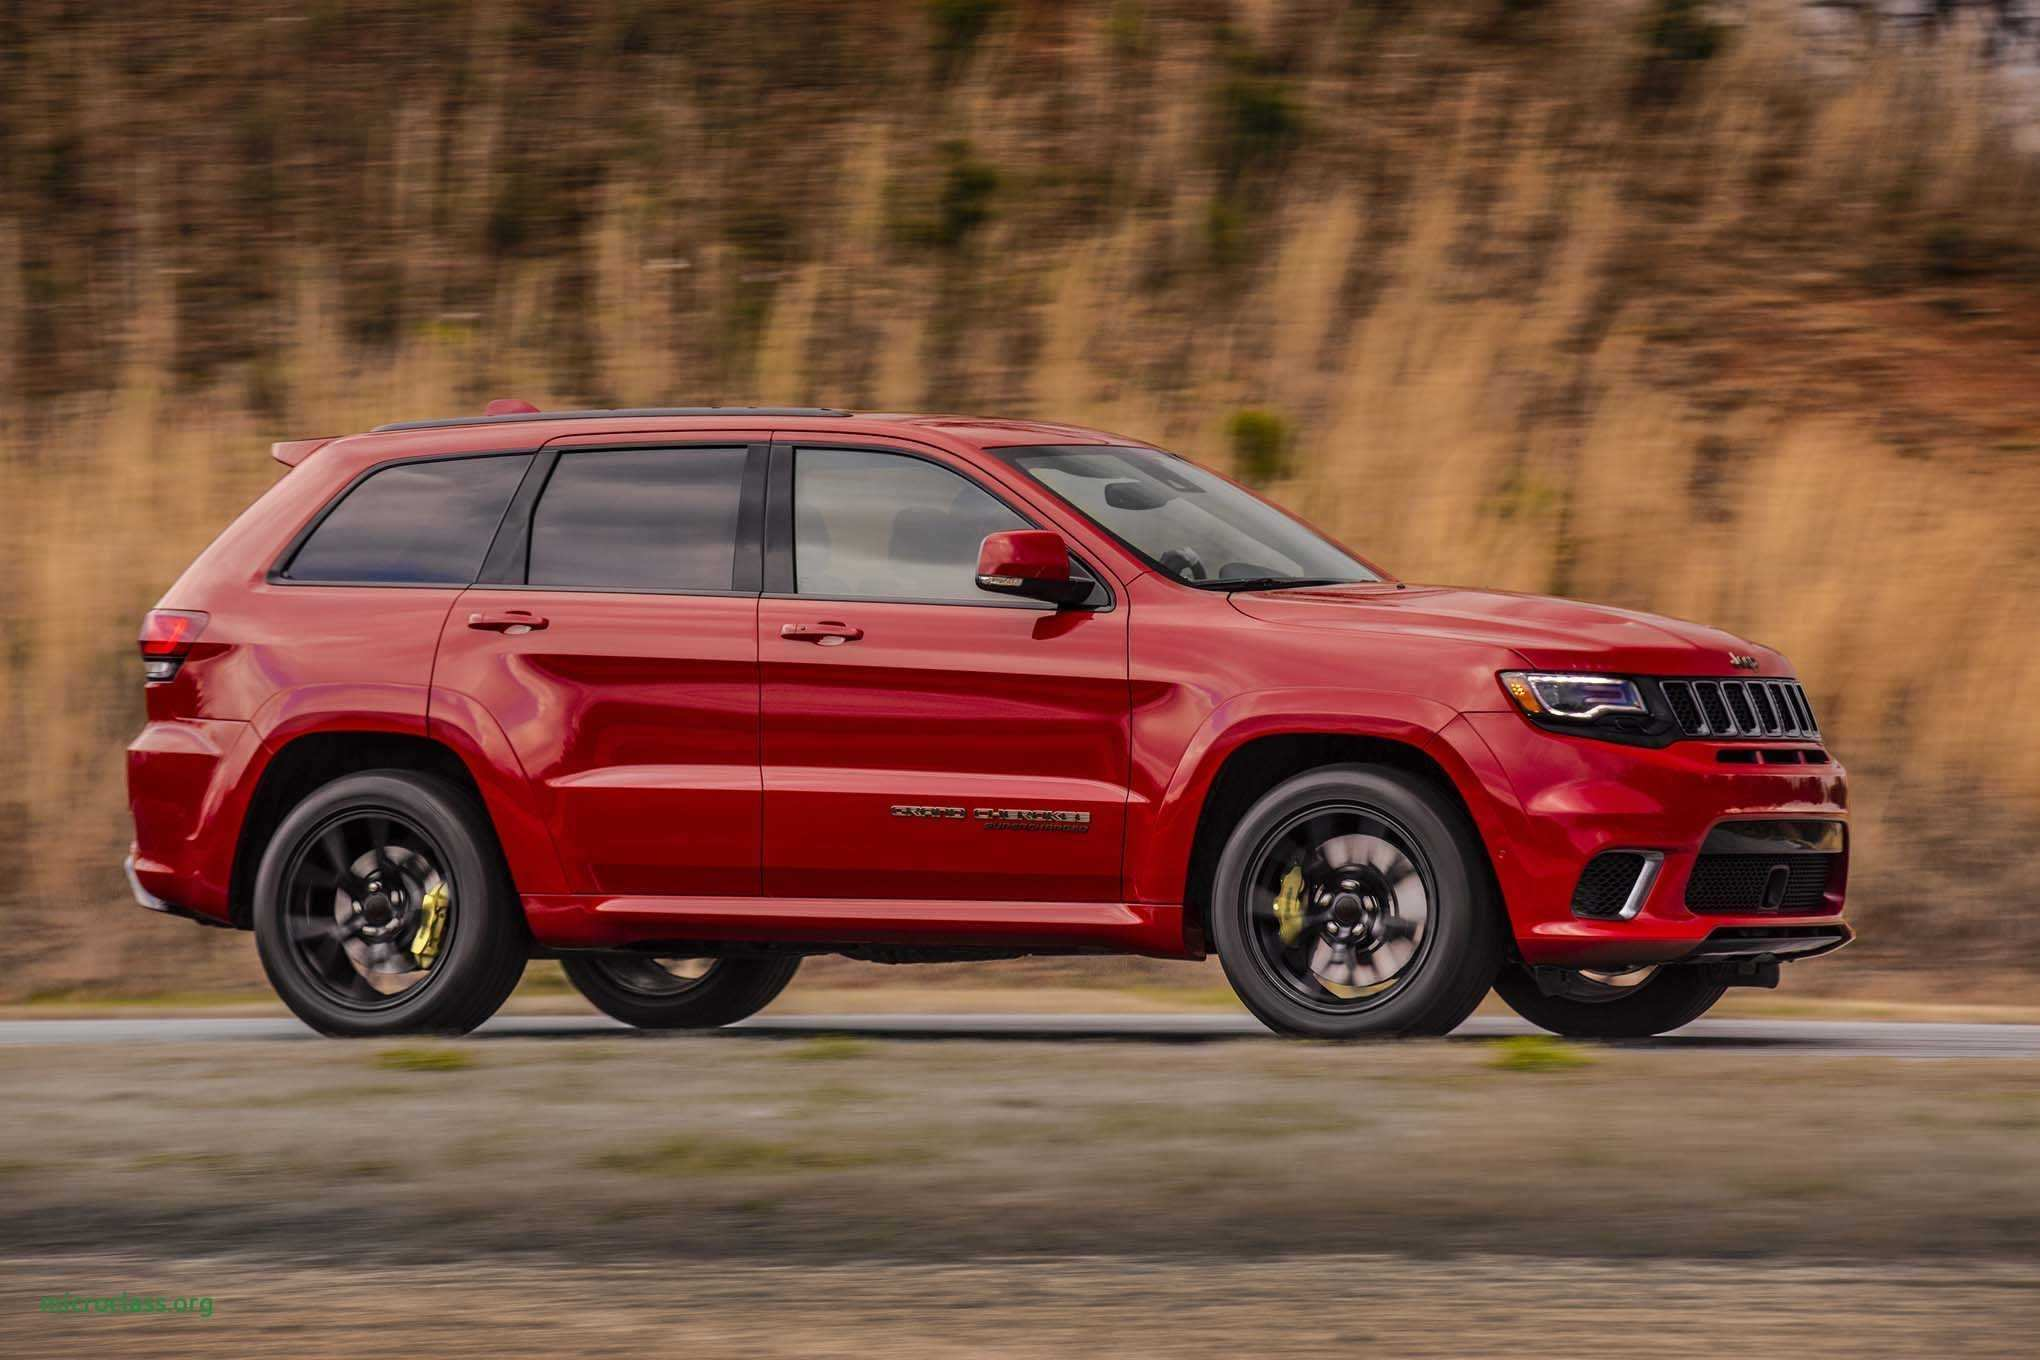 99 All New The Grand Cherokee Jeep 2019 Exterior And Interior Review Performance and New Engine with The Grand Cherokee Jeep 2019 Exterior And Interior Review